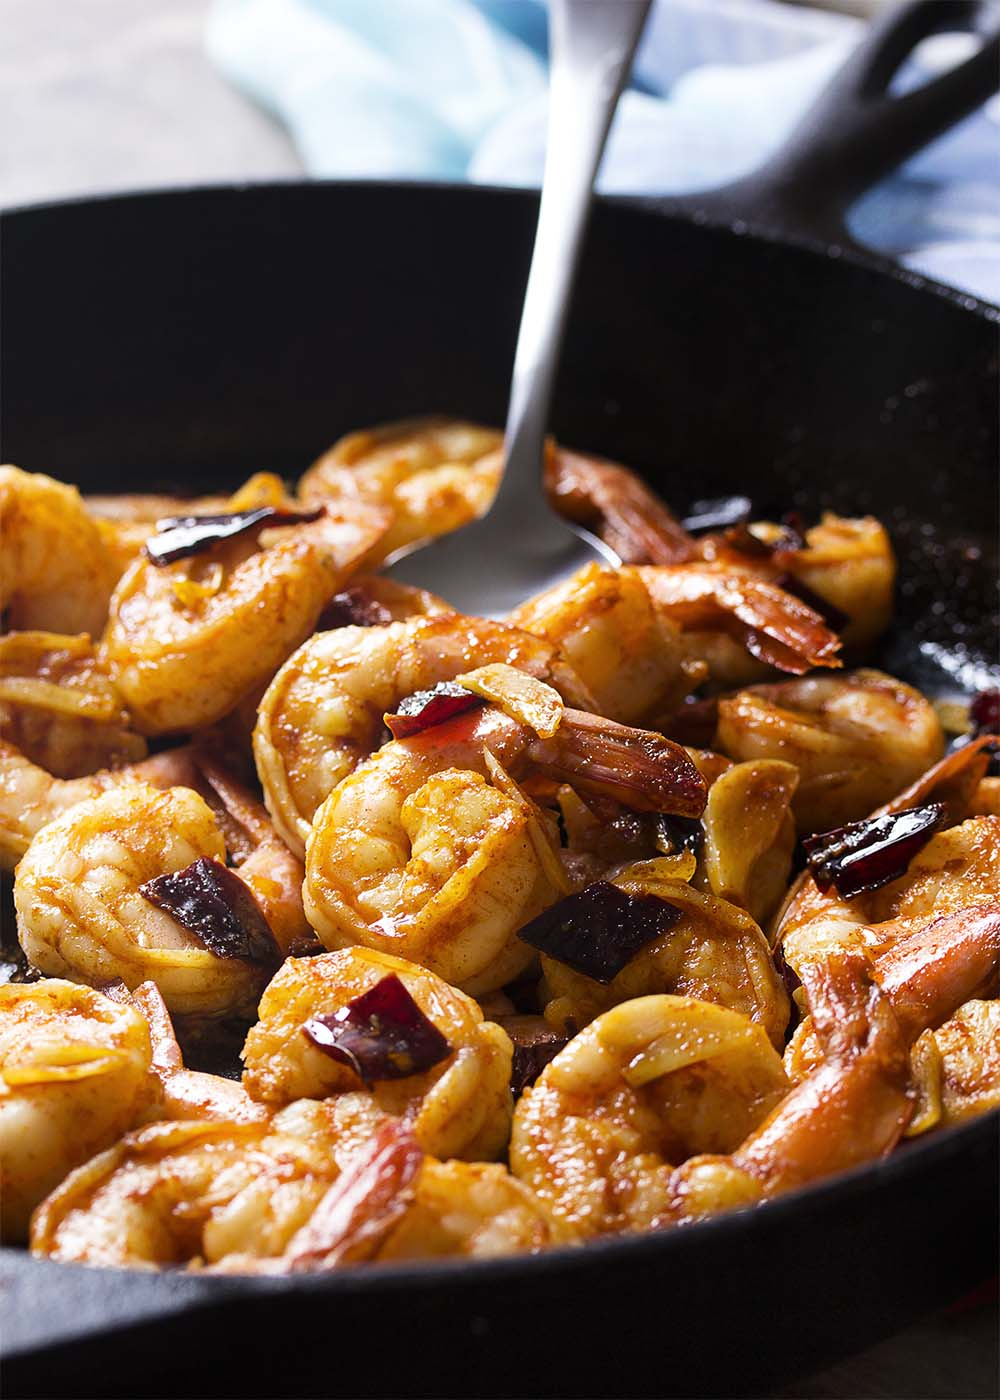 Plump and juicy shrimp, soft sliced garlic, and sweet and smoky paprika combine in this classic tapas recipe for Spanish garlic shrimp. Quick and easy! Make sure you have plenty of bread to soak up the flavorful olive oil! | justalittlebitofbacon.com